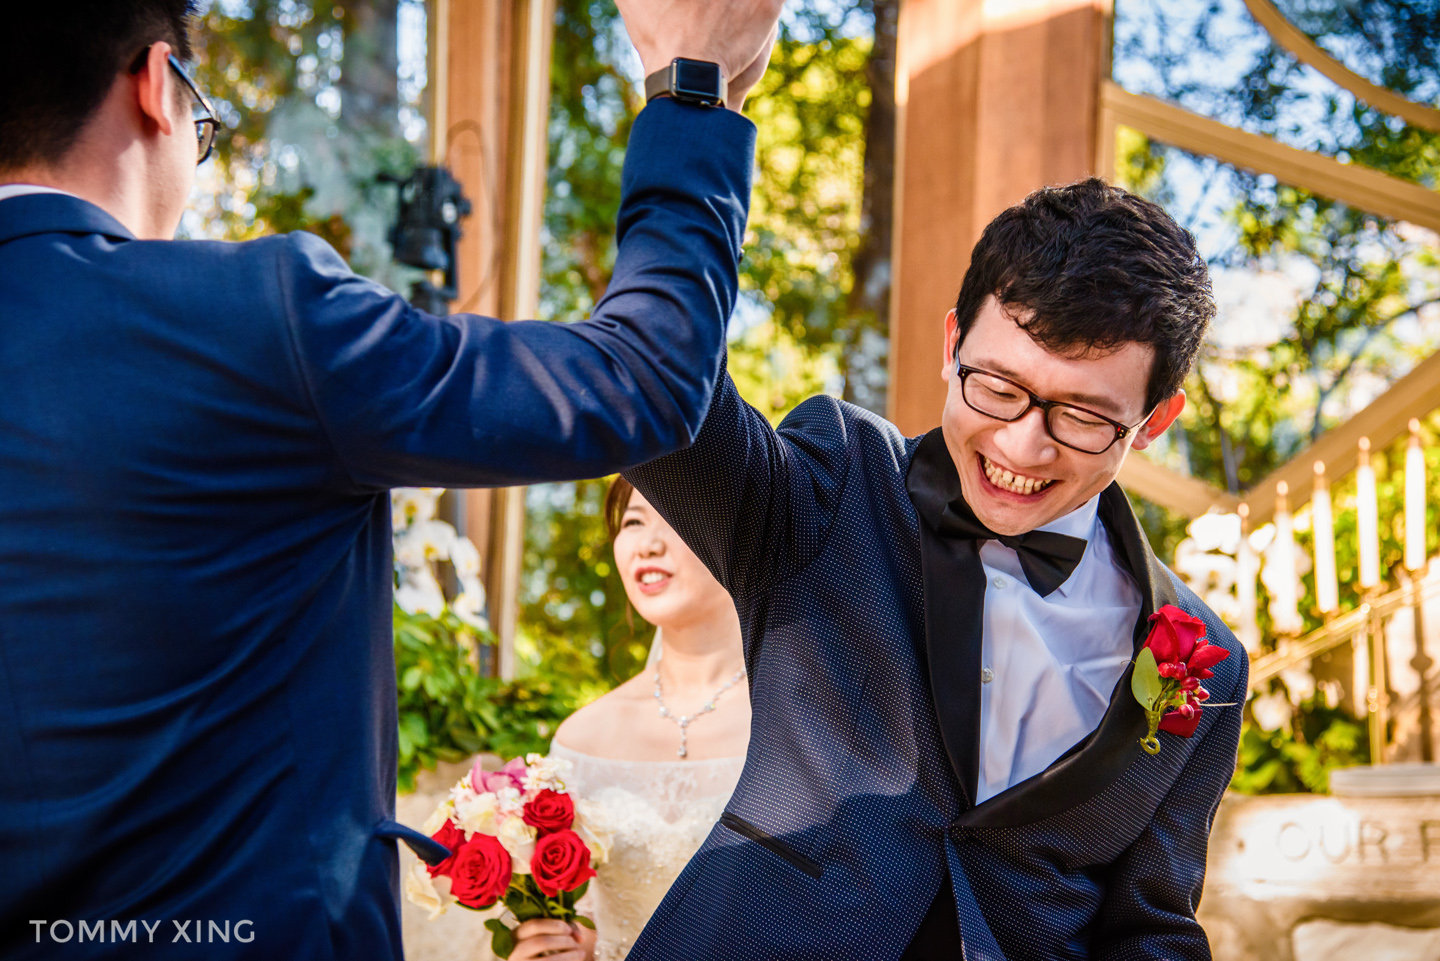 Los Angeles Wedding Photographer 洛杉矶婚礼婚纱摄影师 Tommy Xing-160.JPG